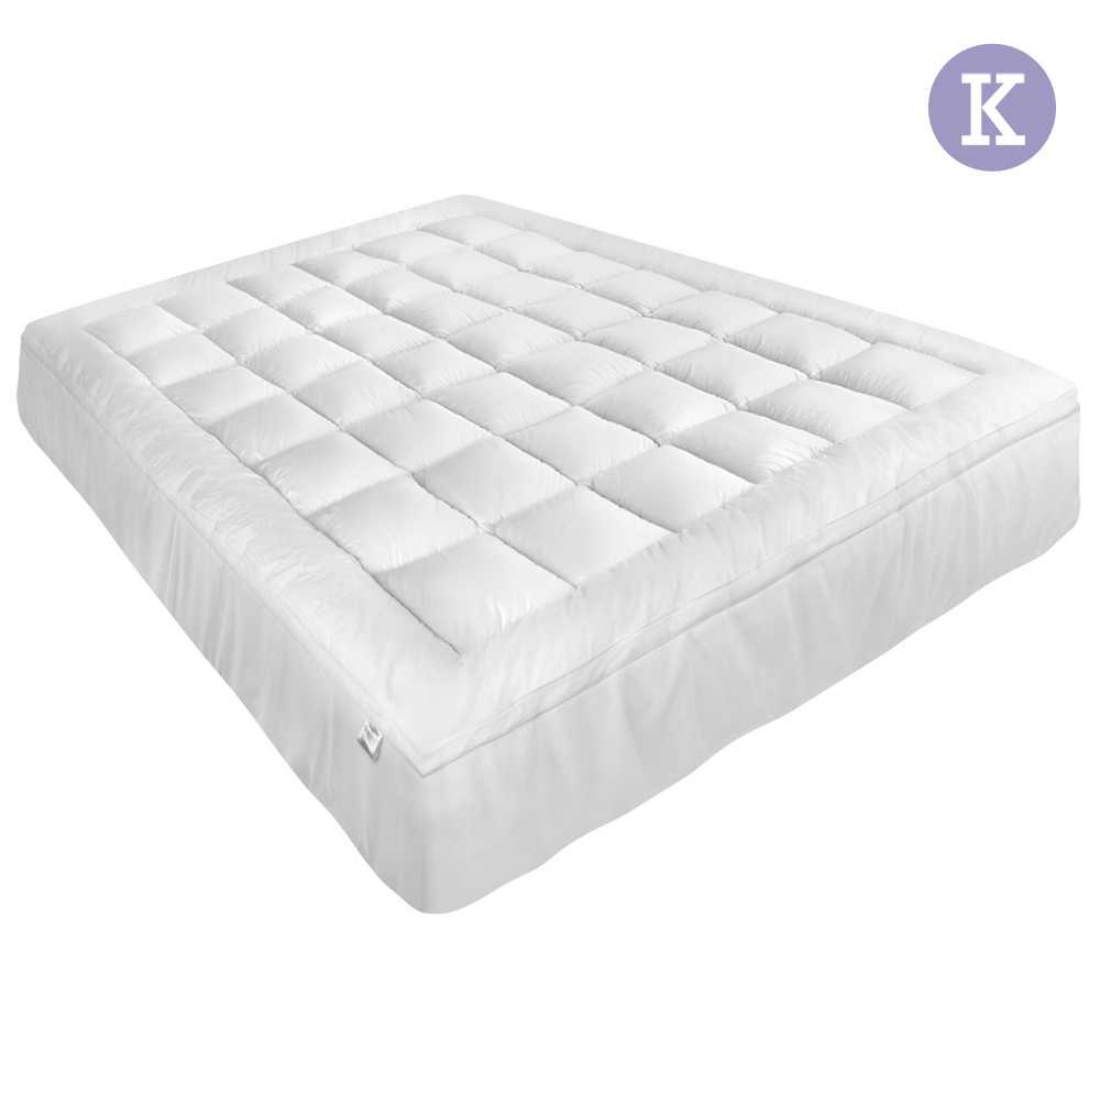 King Pillowtop Mattress Topper Memory Resistant Protector Pad Cover